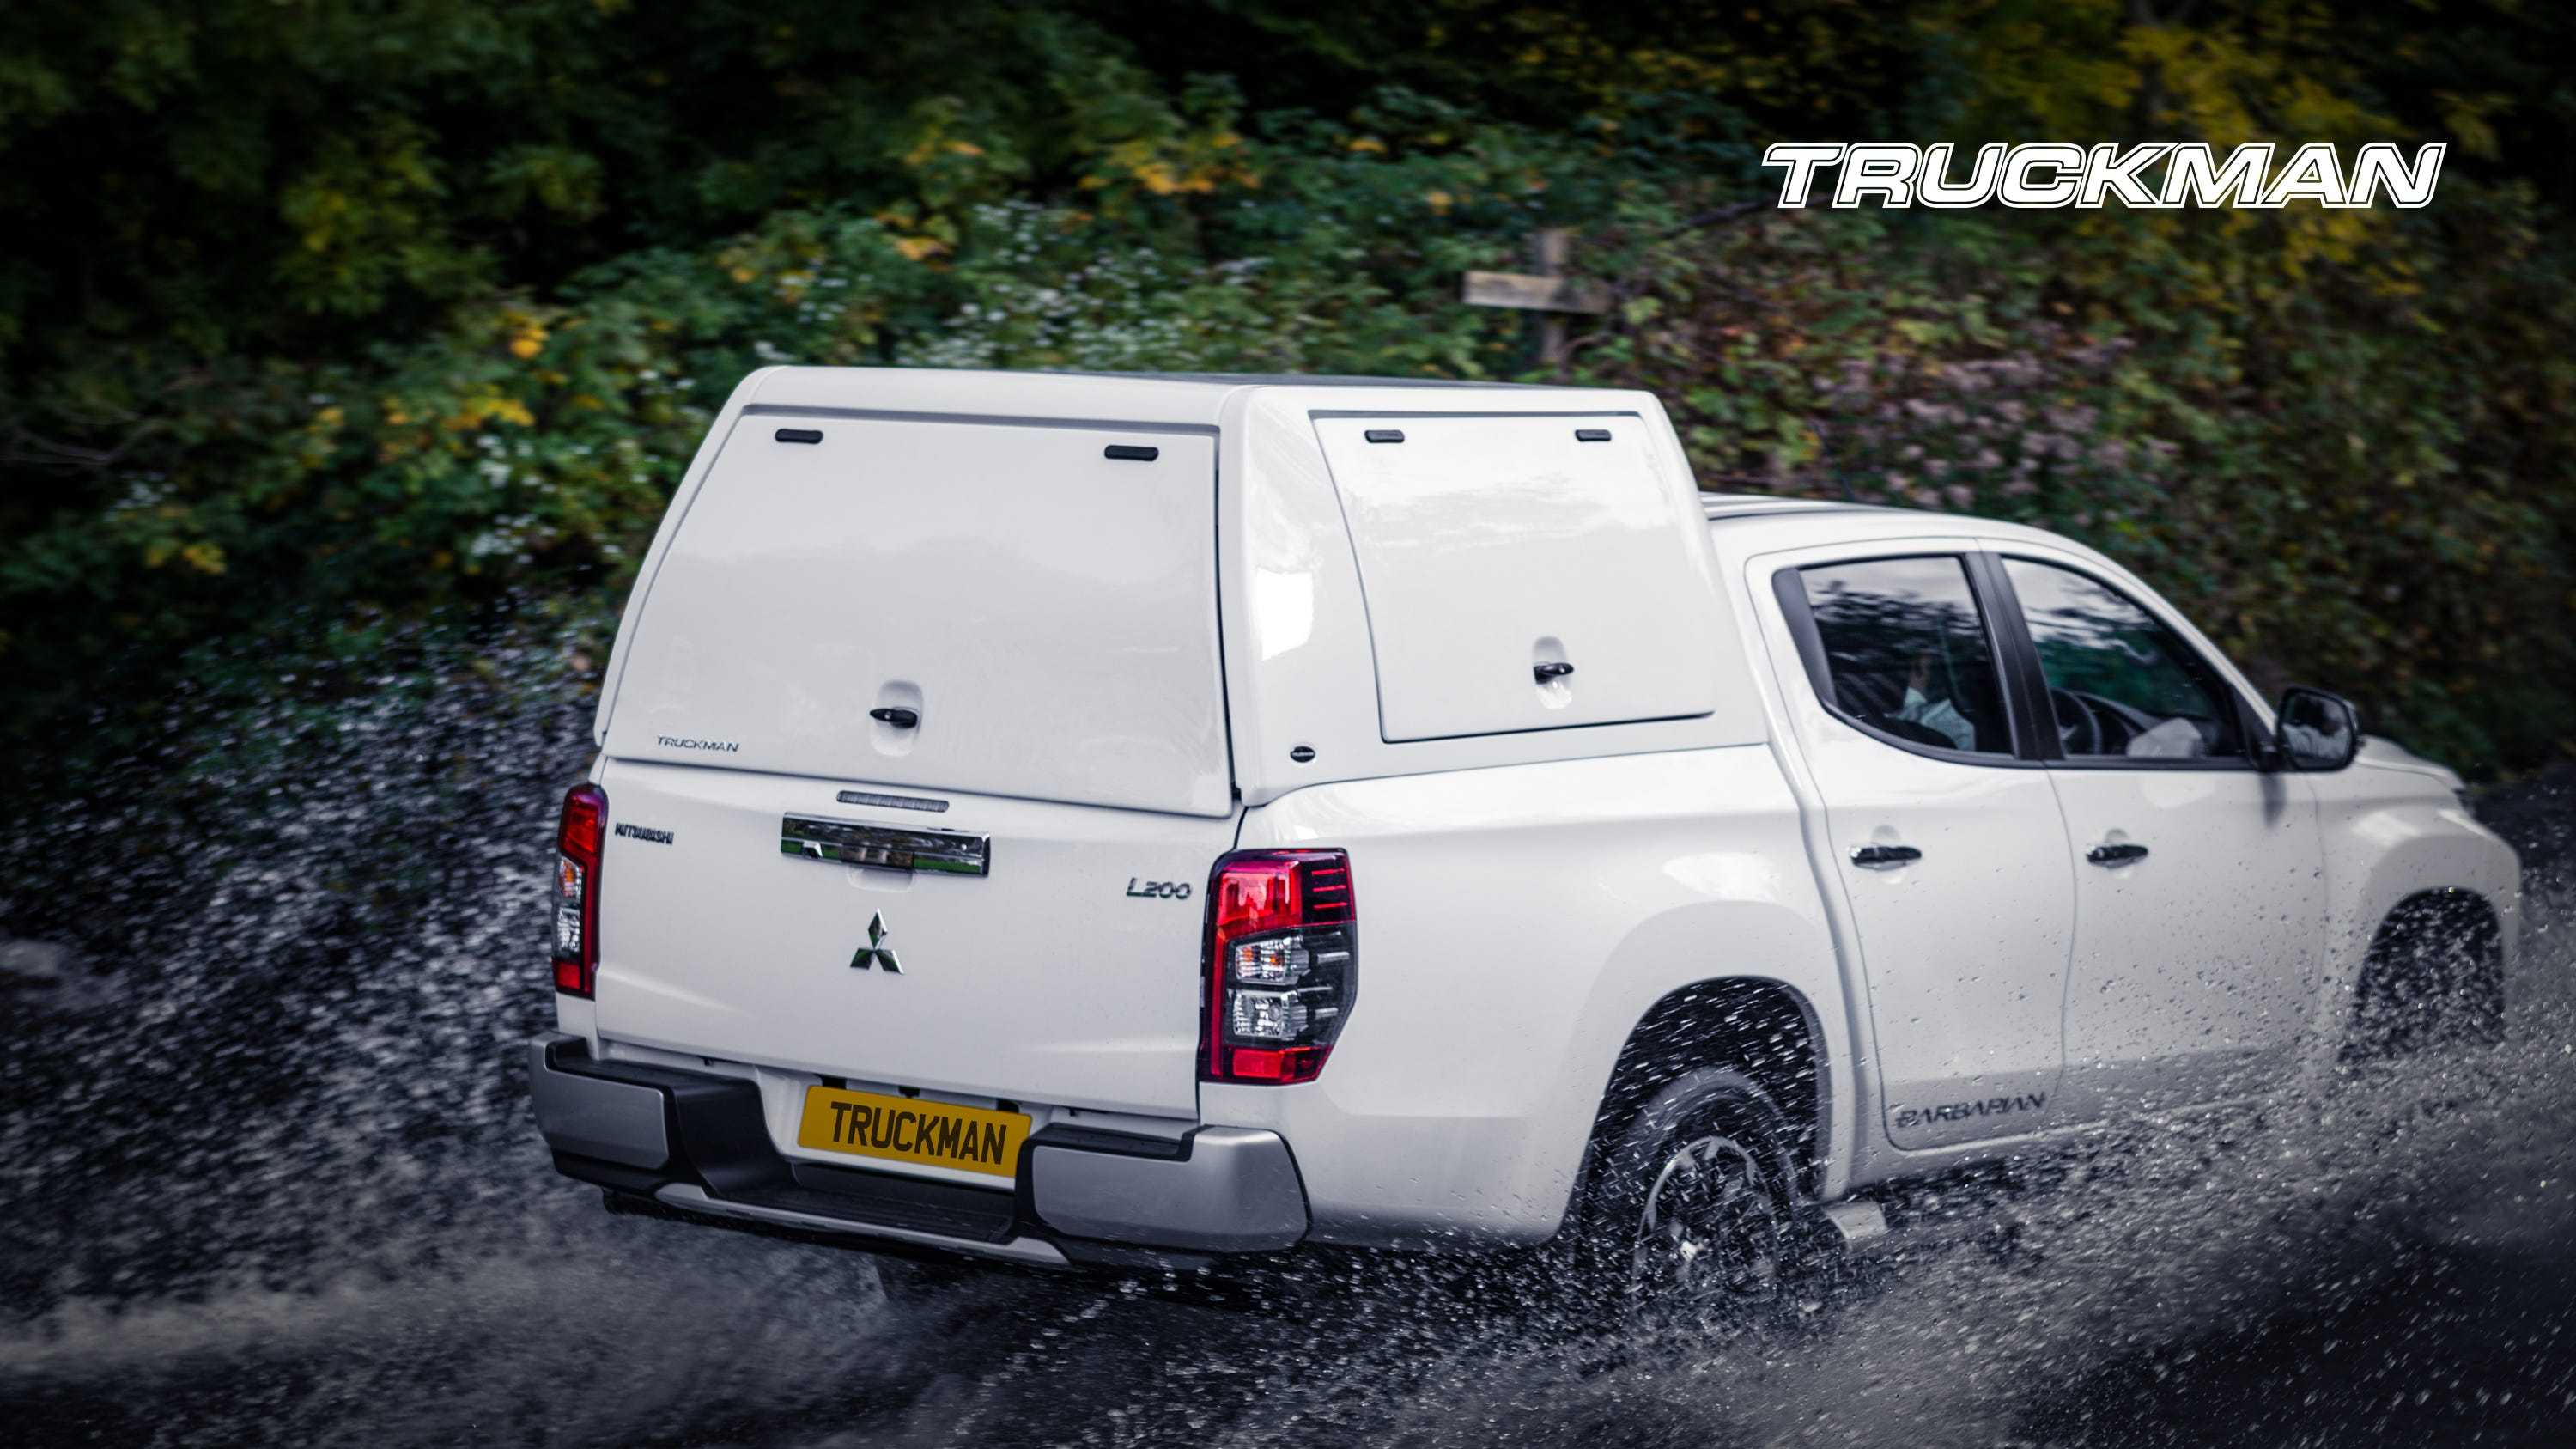 Mitsubishi L200 Double Cab Fitted With a Truckman Utility Hardtop Canopy